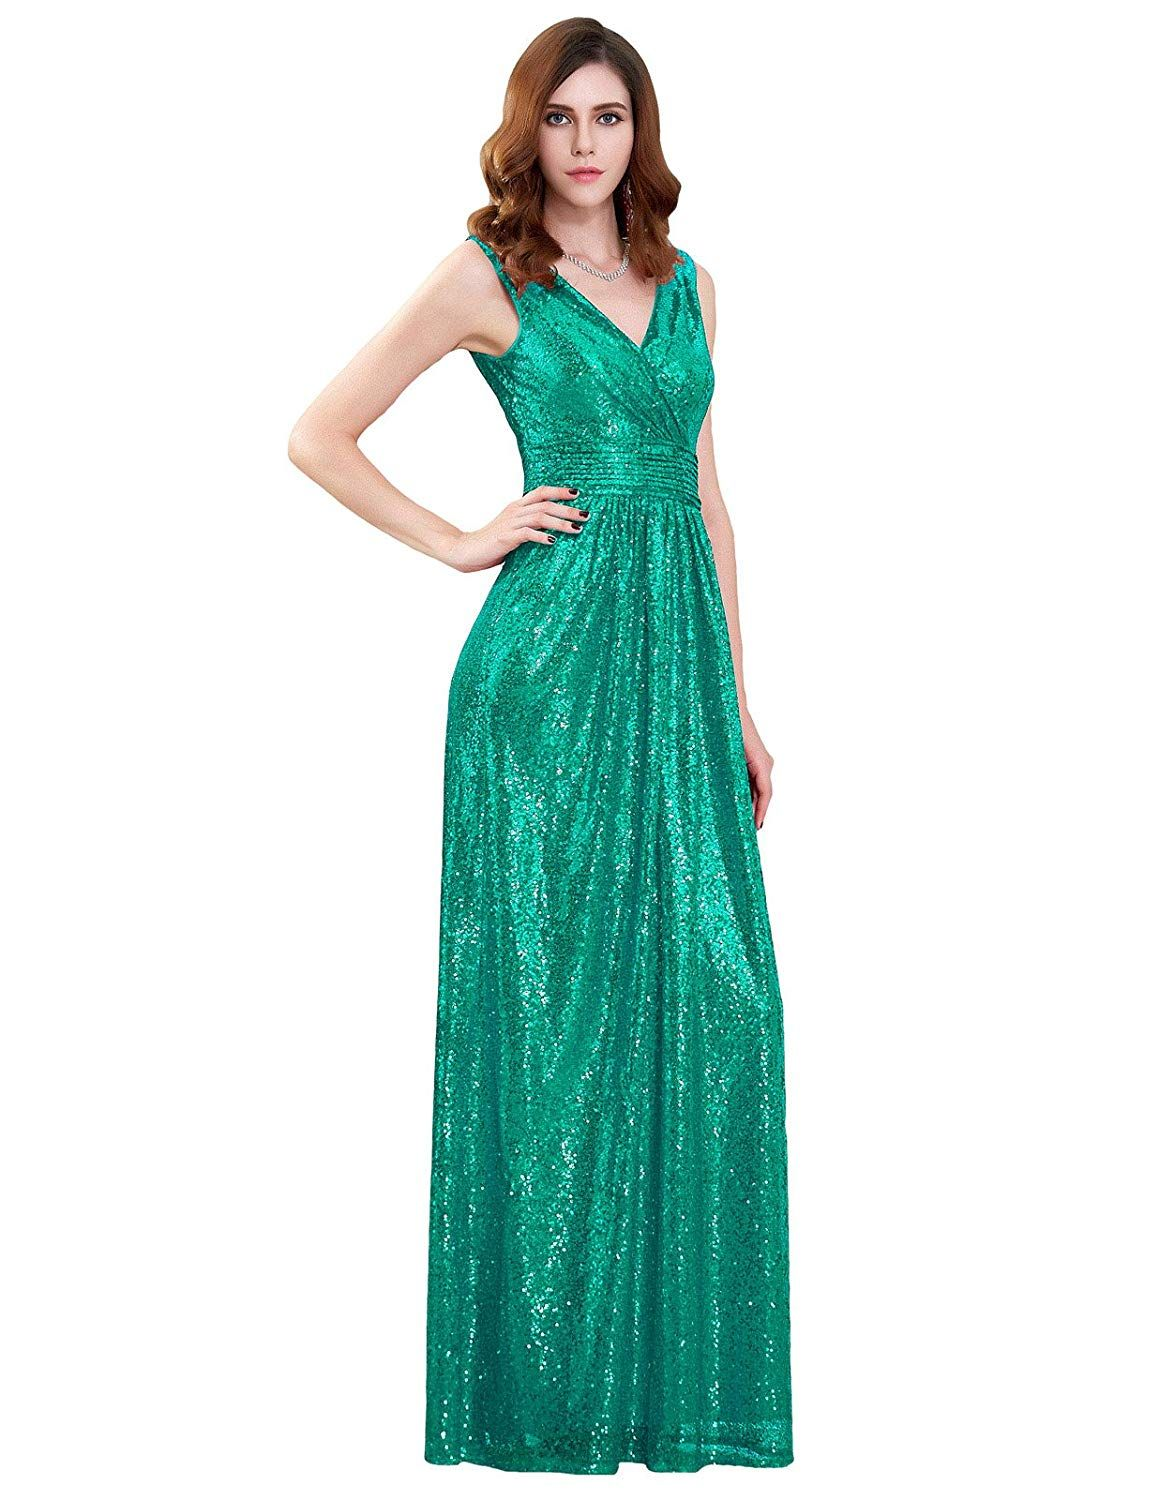 626a9ac7fed0c7 Kate Kasin Deep-V Formal Sequined Dress For Bridesmaid Wedding Party Green  USA8 KK199-